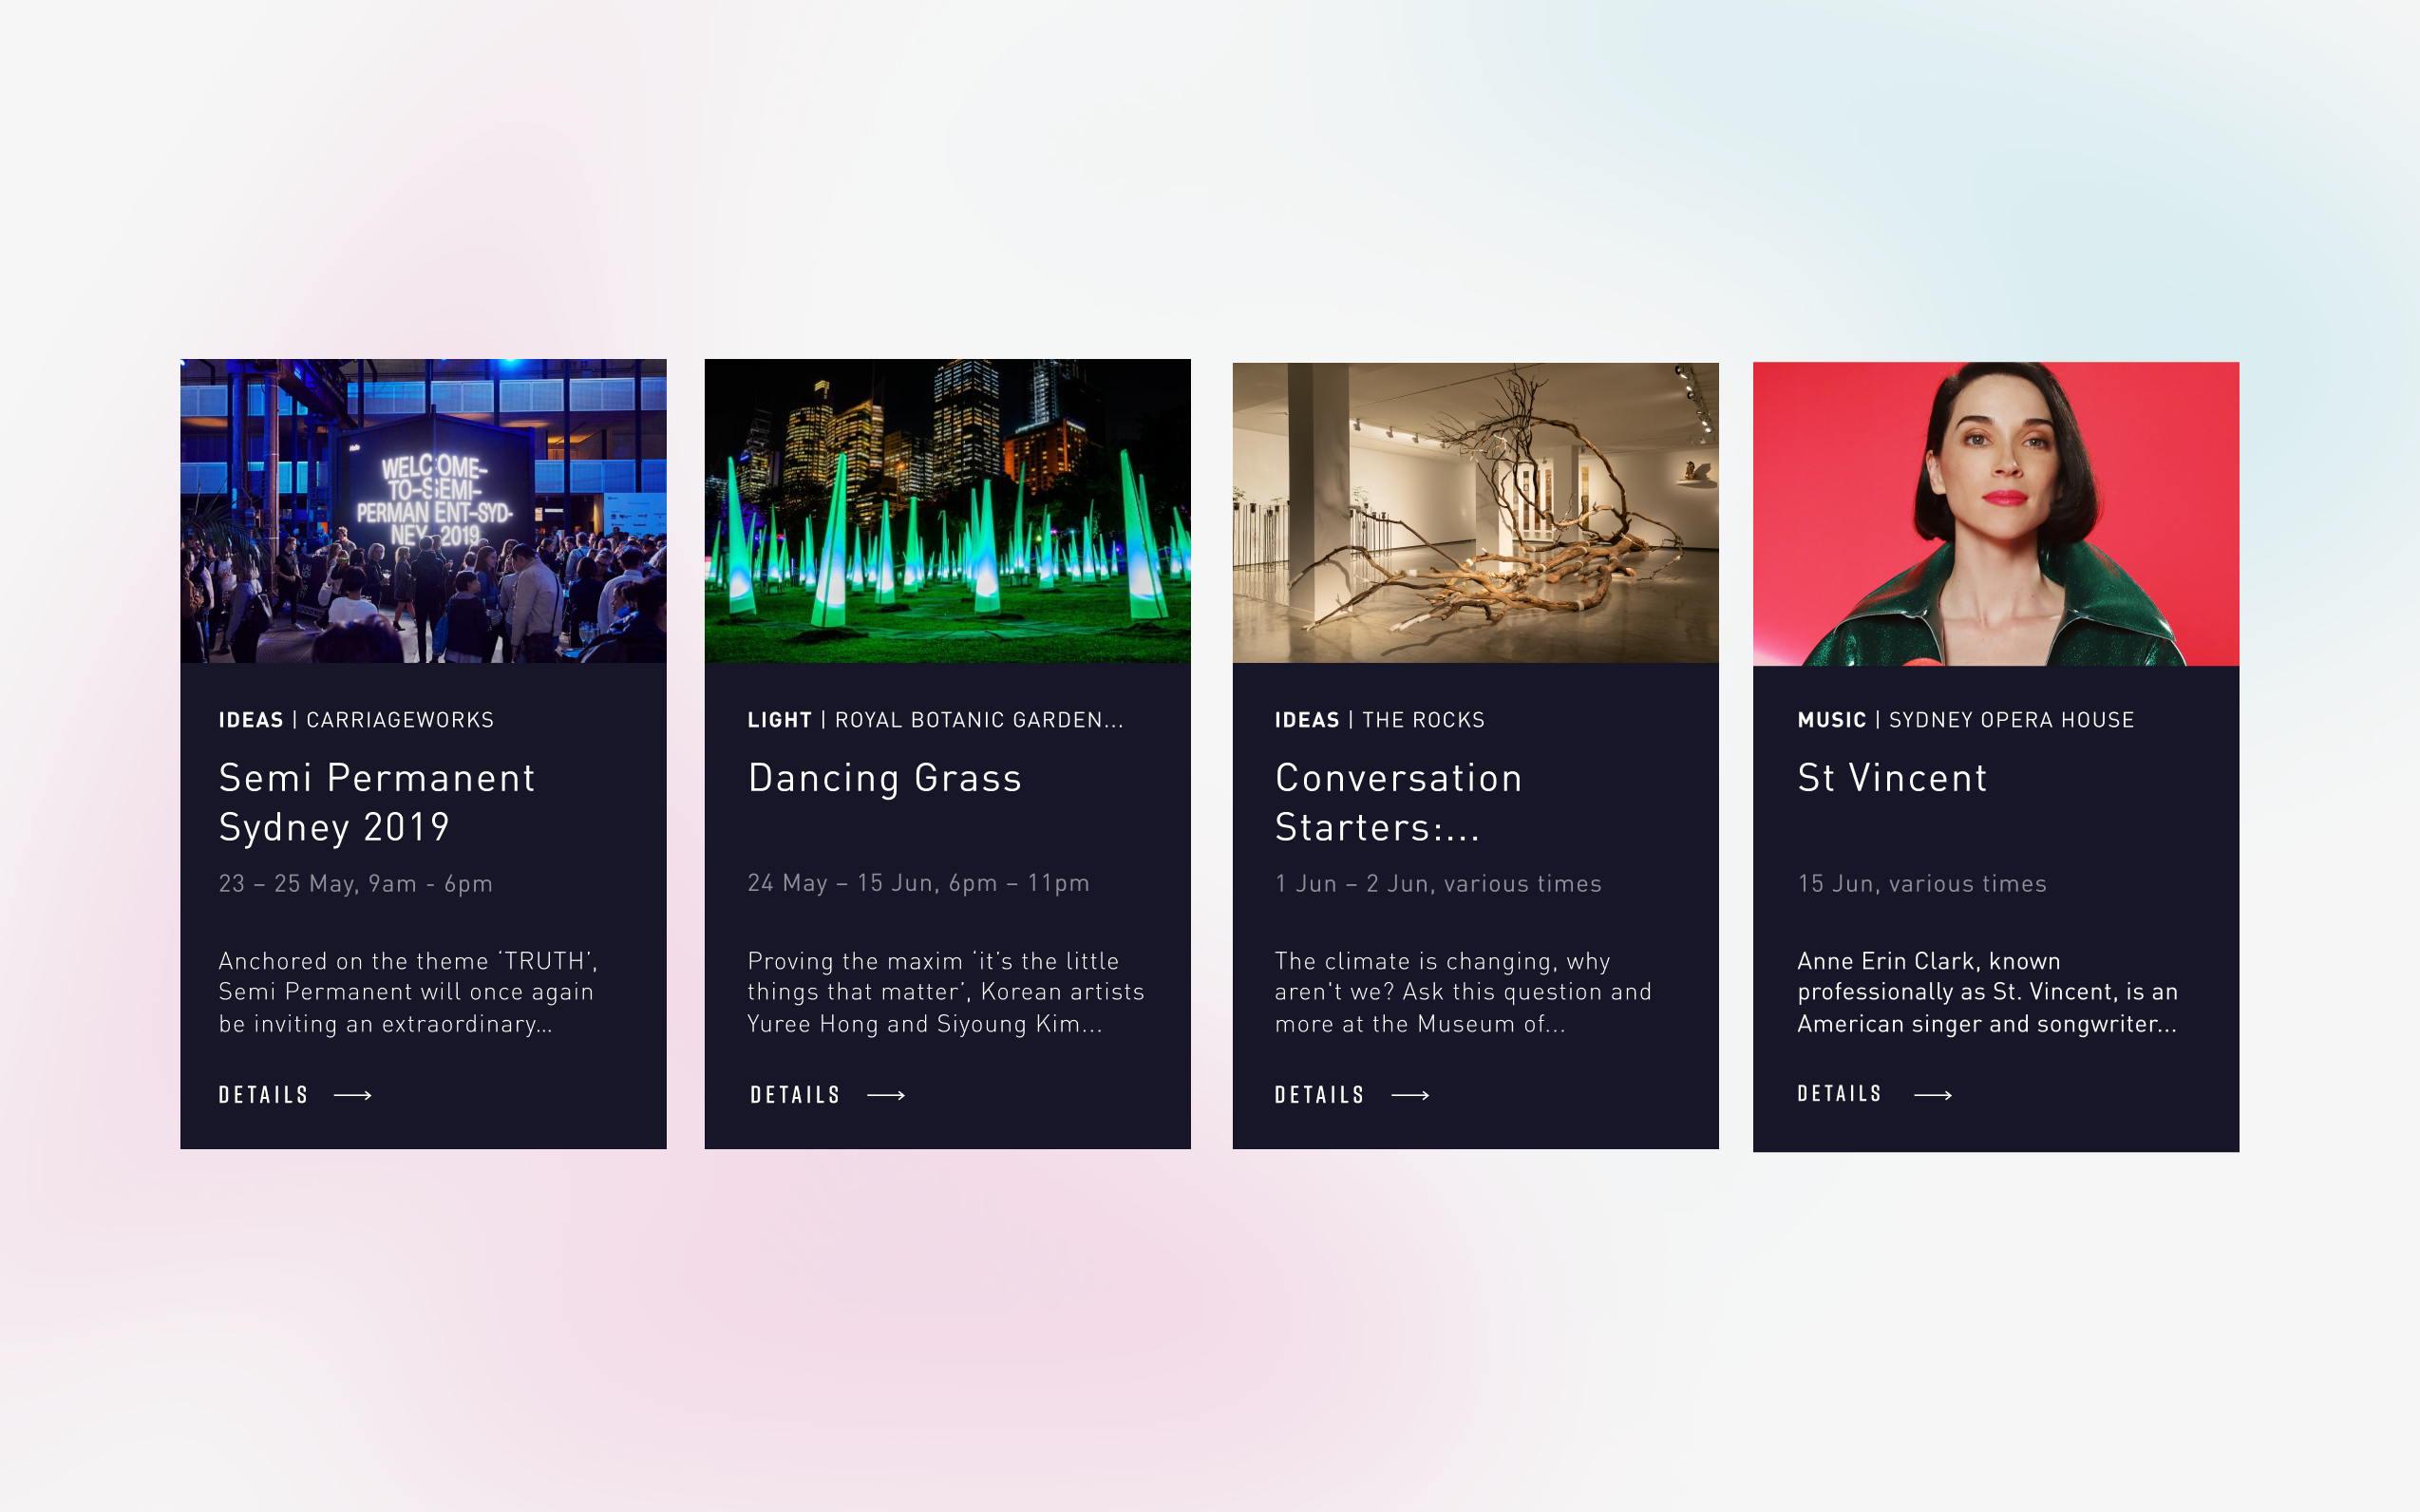 Four event cards from the vividsydney website